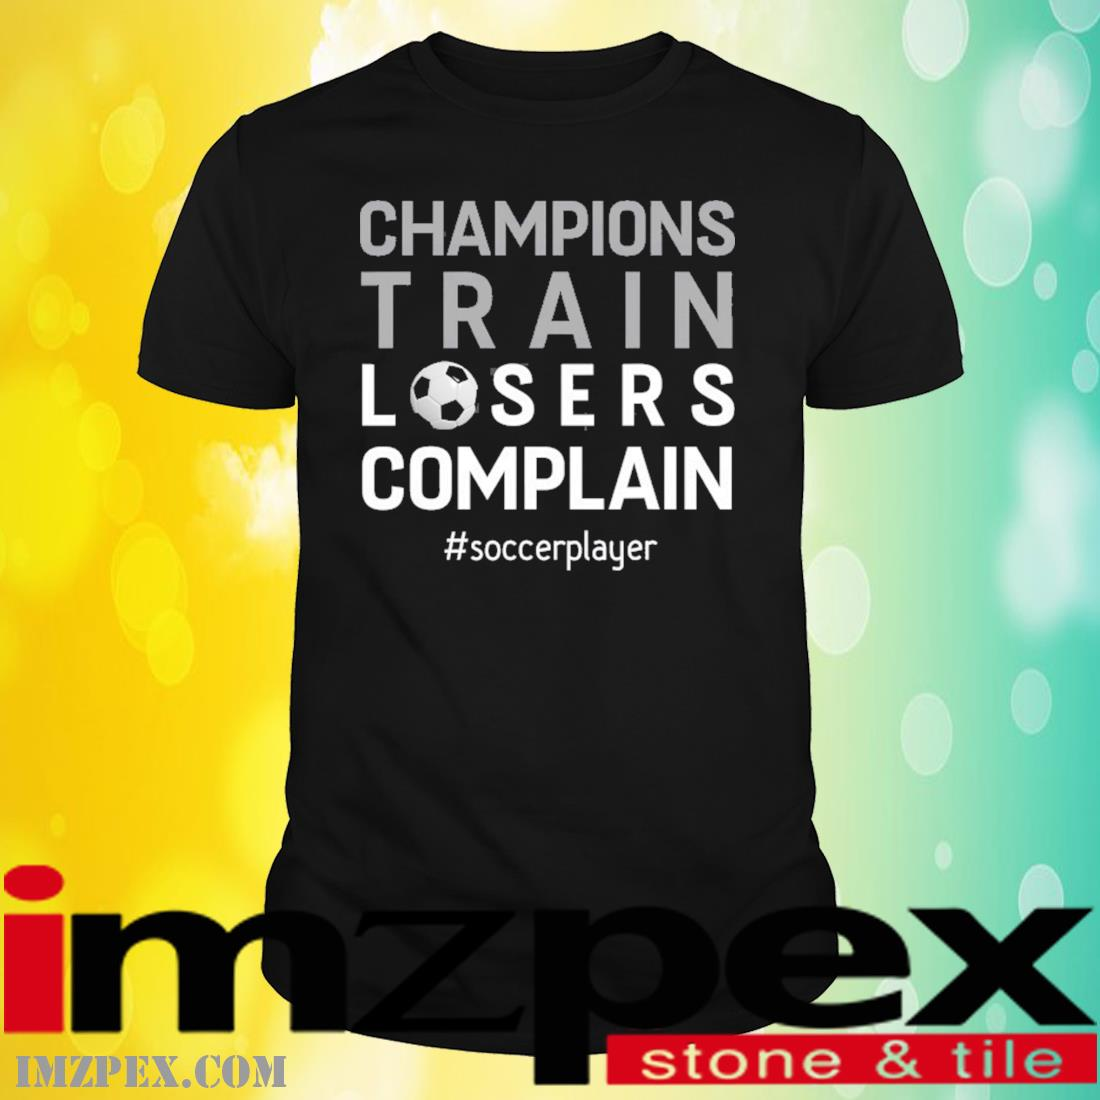 Soccer Player Shirt Champion Motivation Quote Gift Outfit Shirt